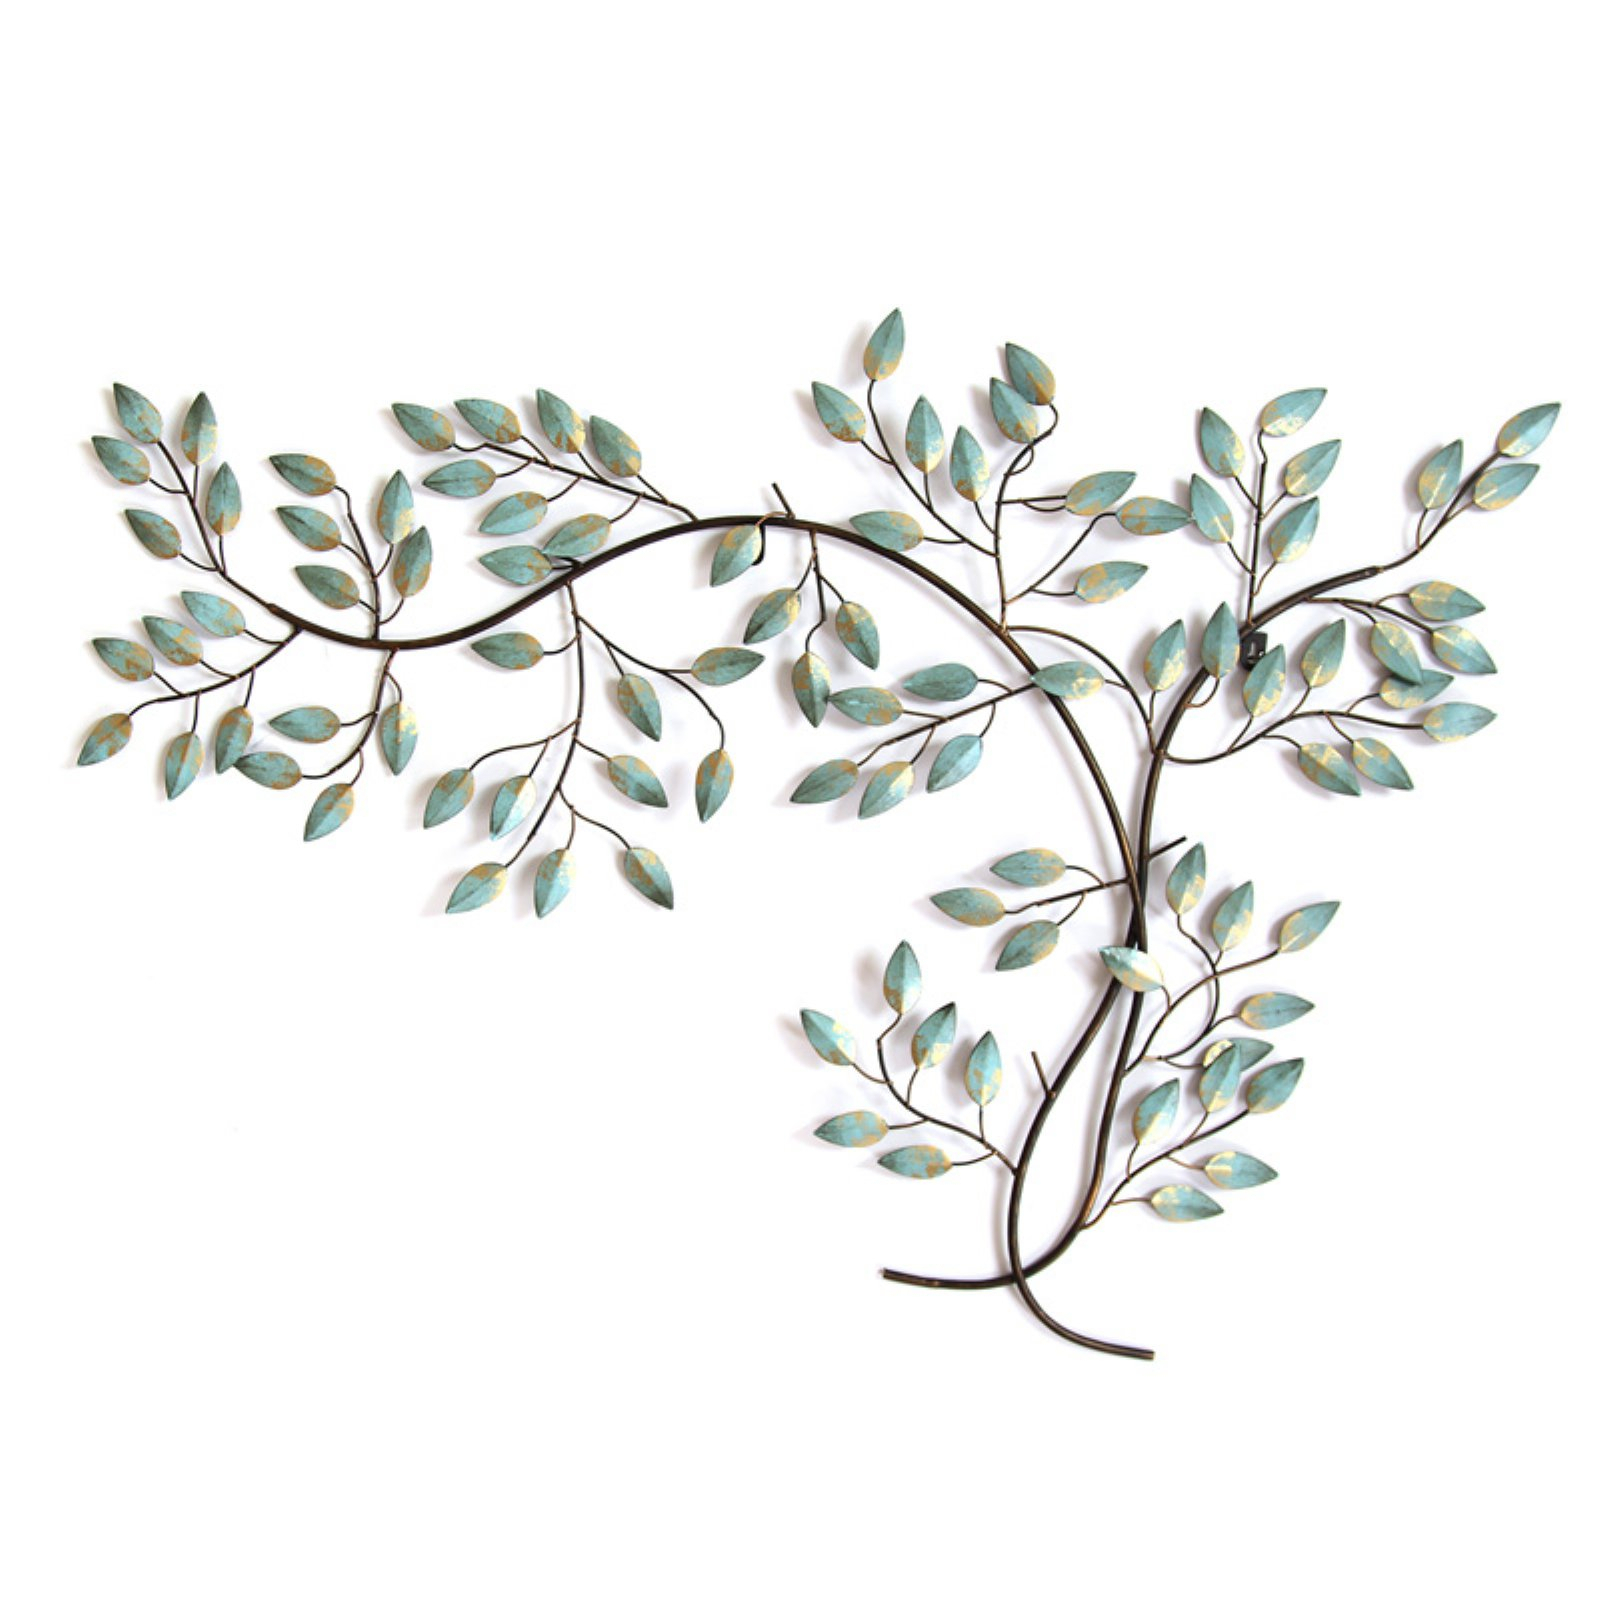 Fashionable Stratton Home Decor Tree Branch Wall Decor (View 16 of 20)